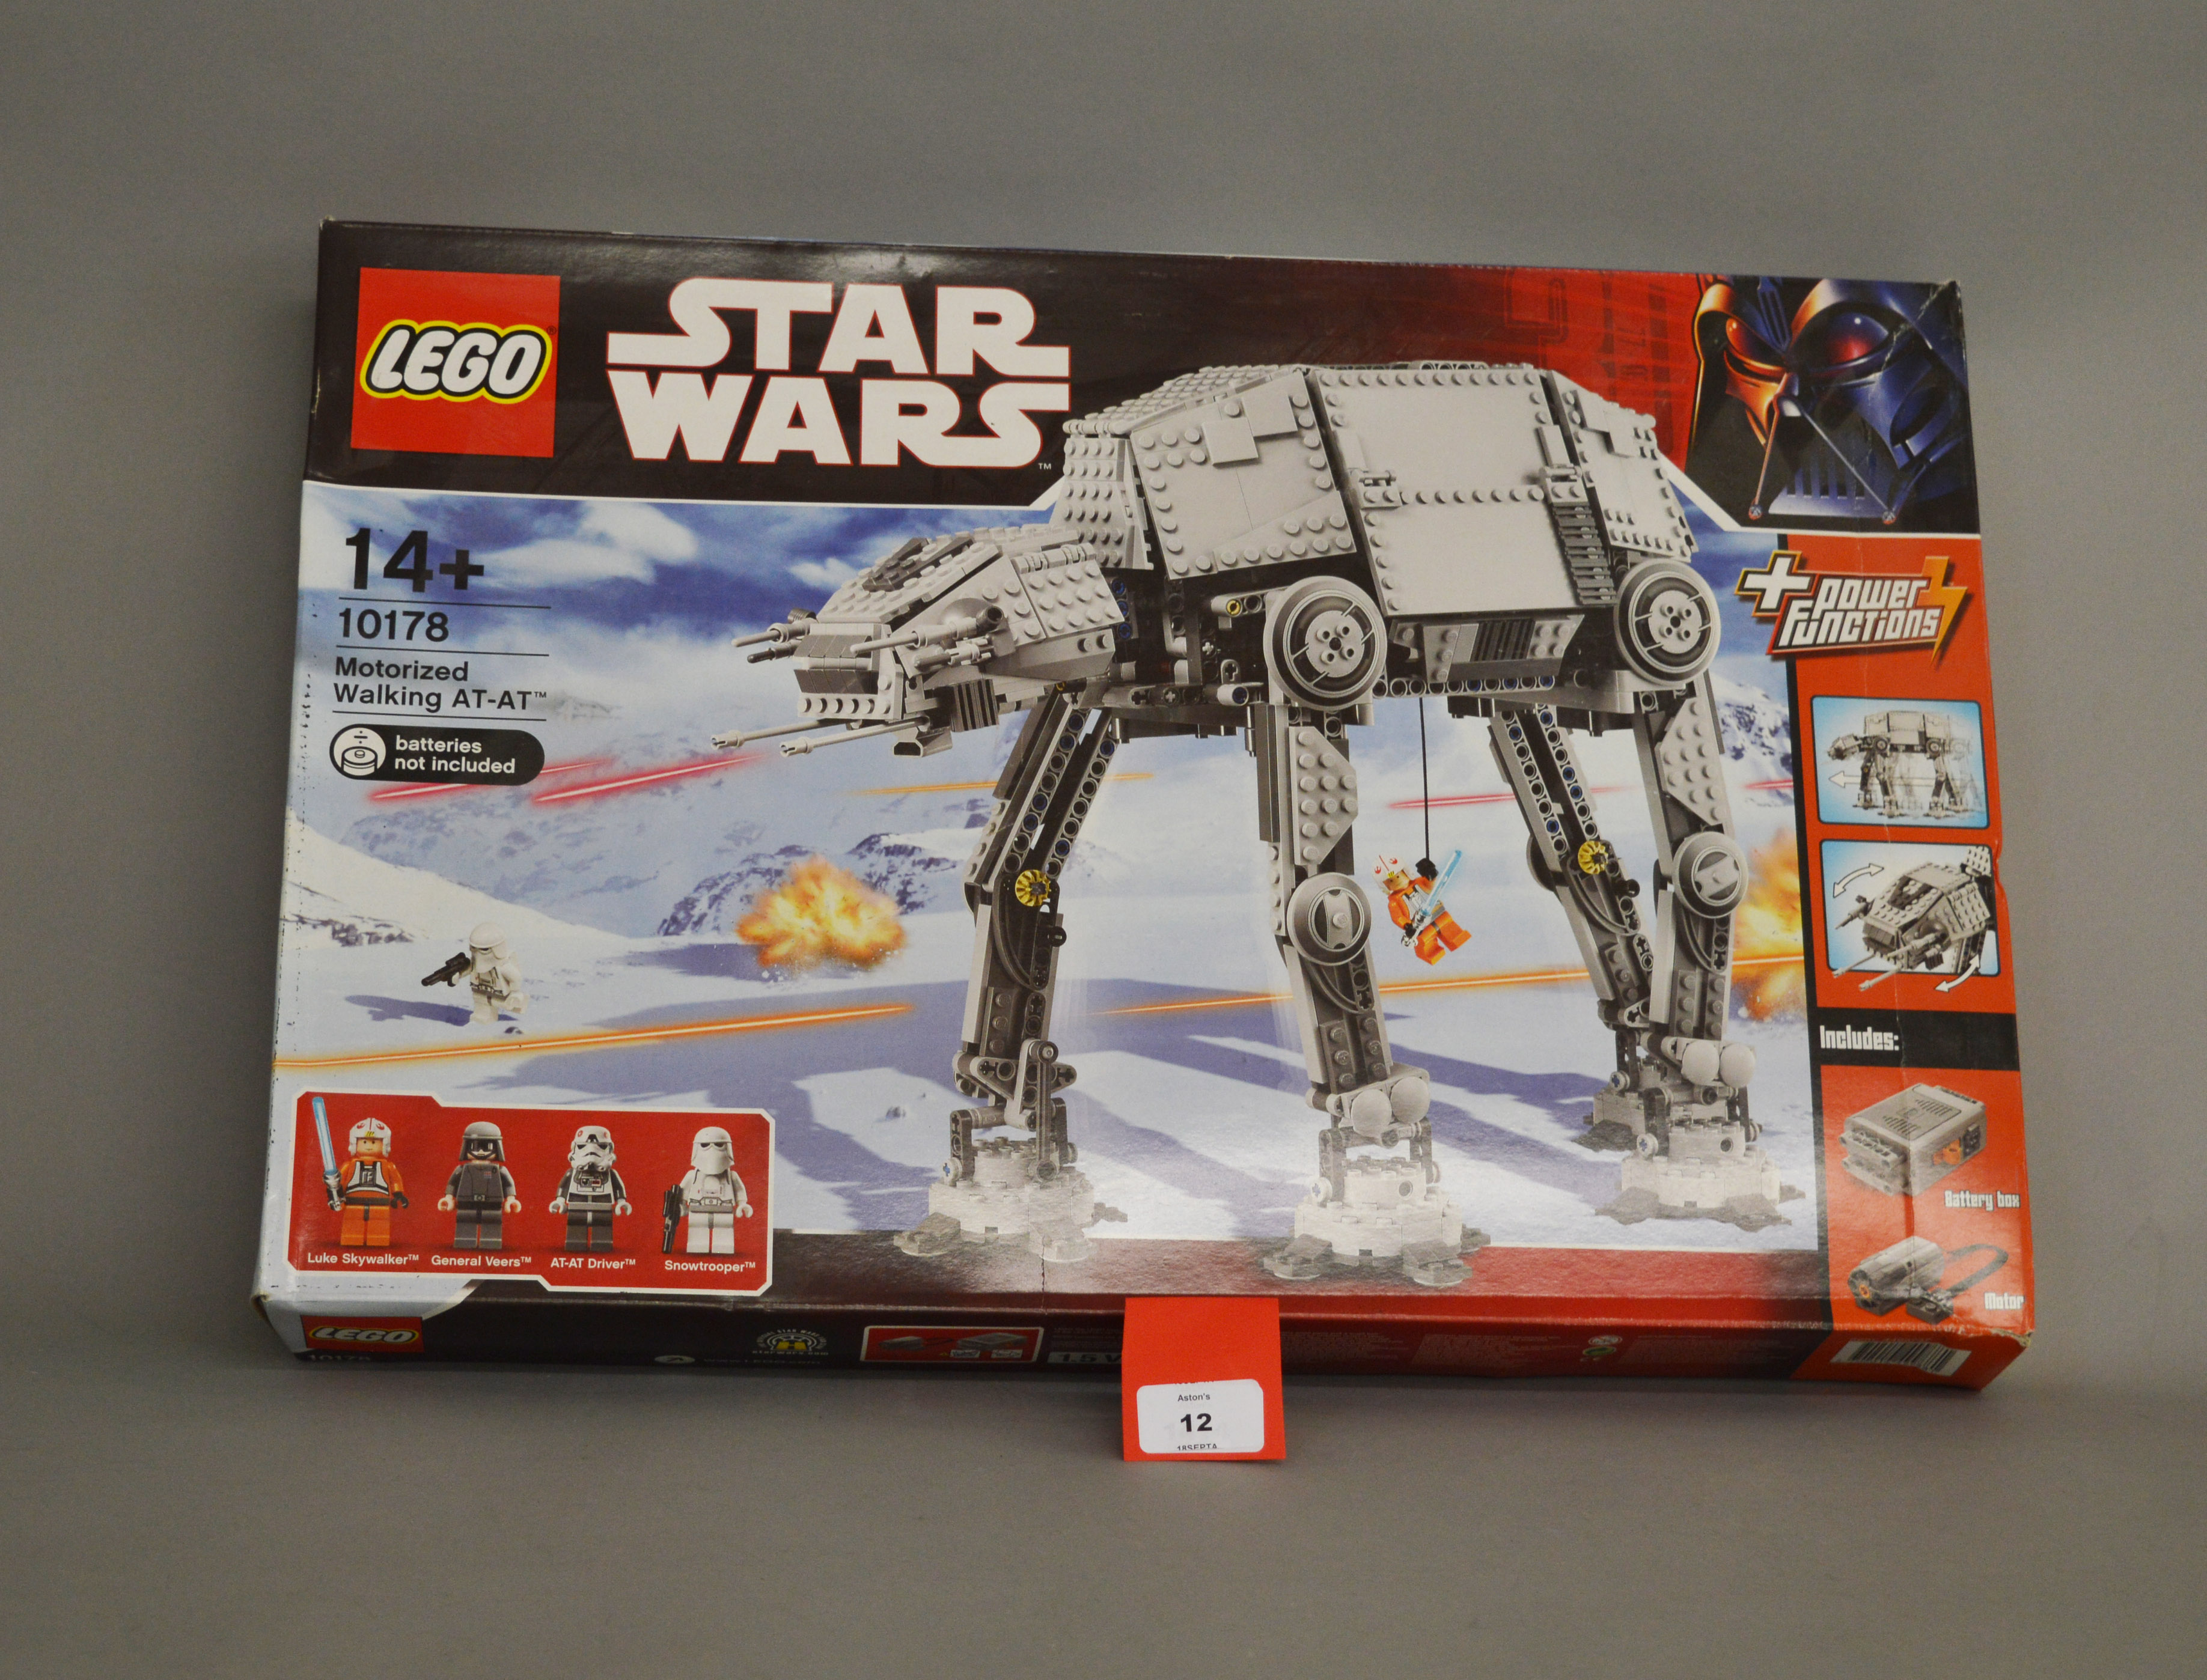 Lot 12 - Lego Star Wars 10178 Motorized Walking AT-AT.